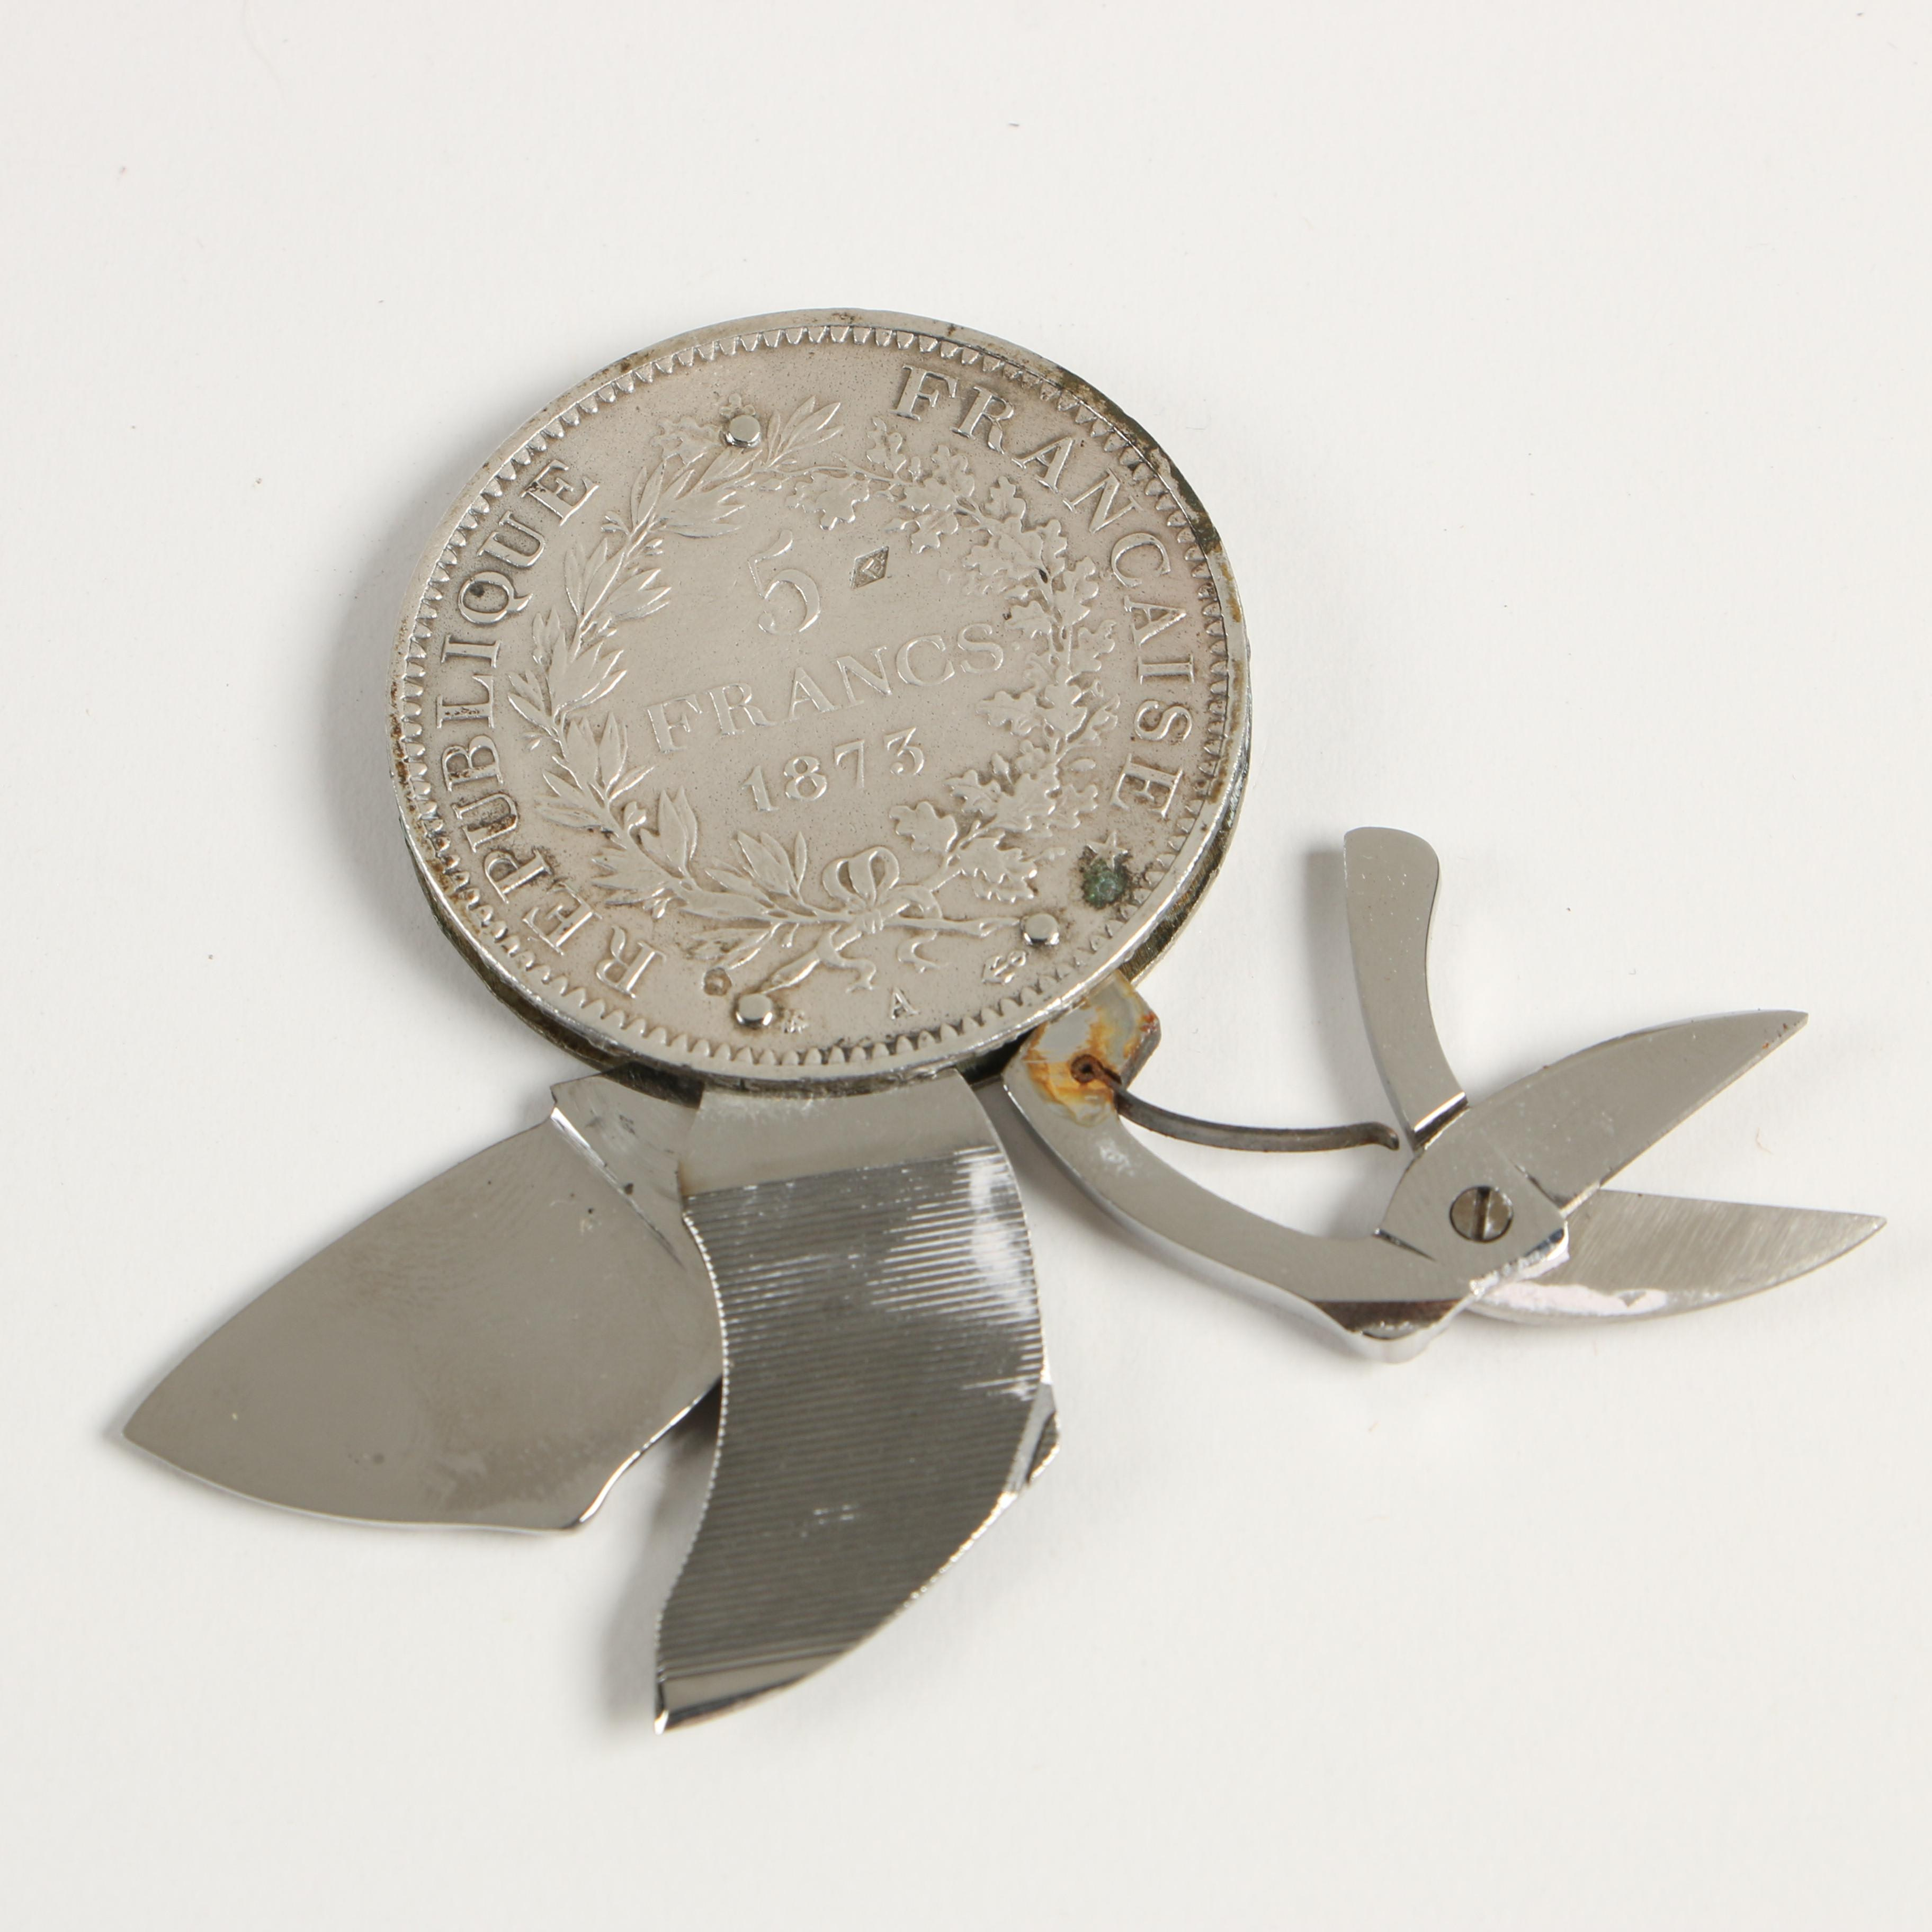 1873-A French 5 Francs Silver Coin Pocket Knife